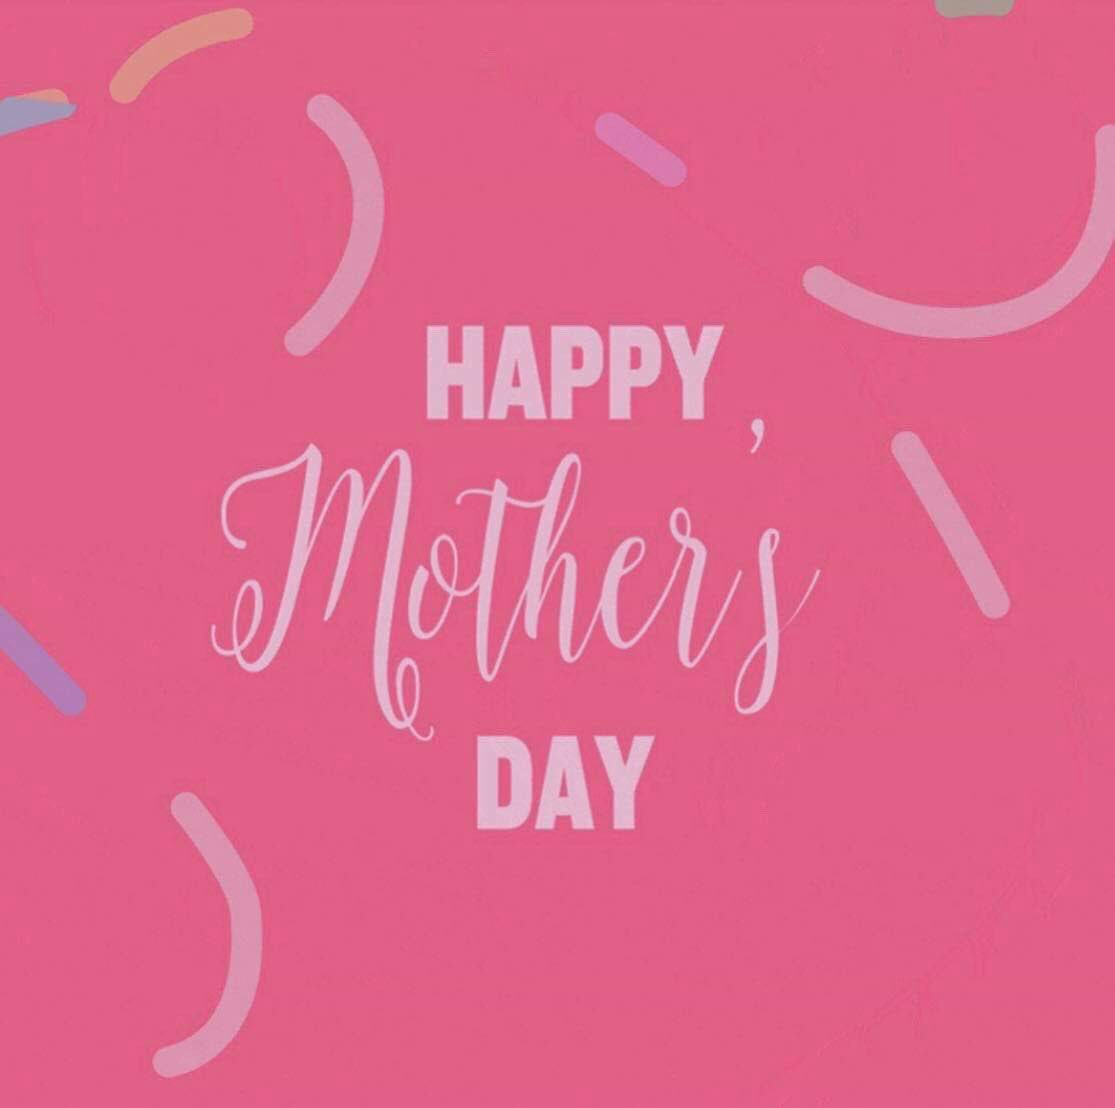 Happy Mother's Day!💐💐